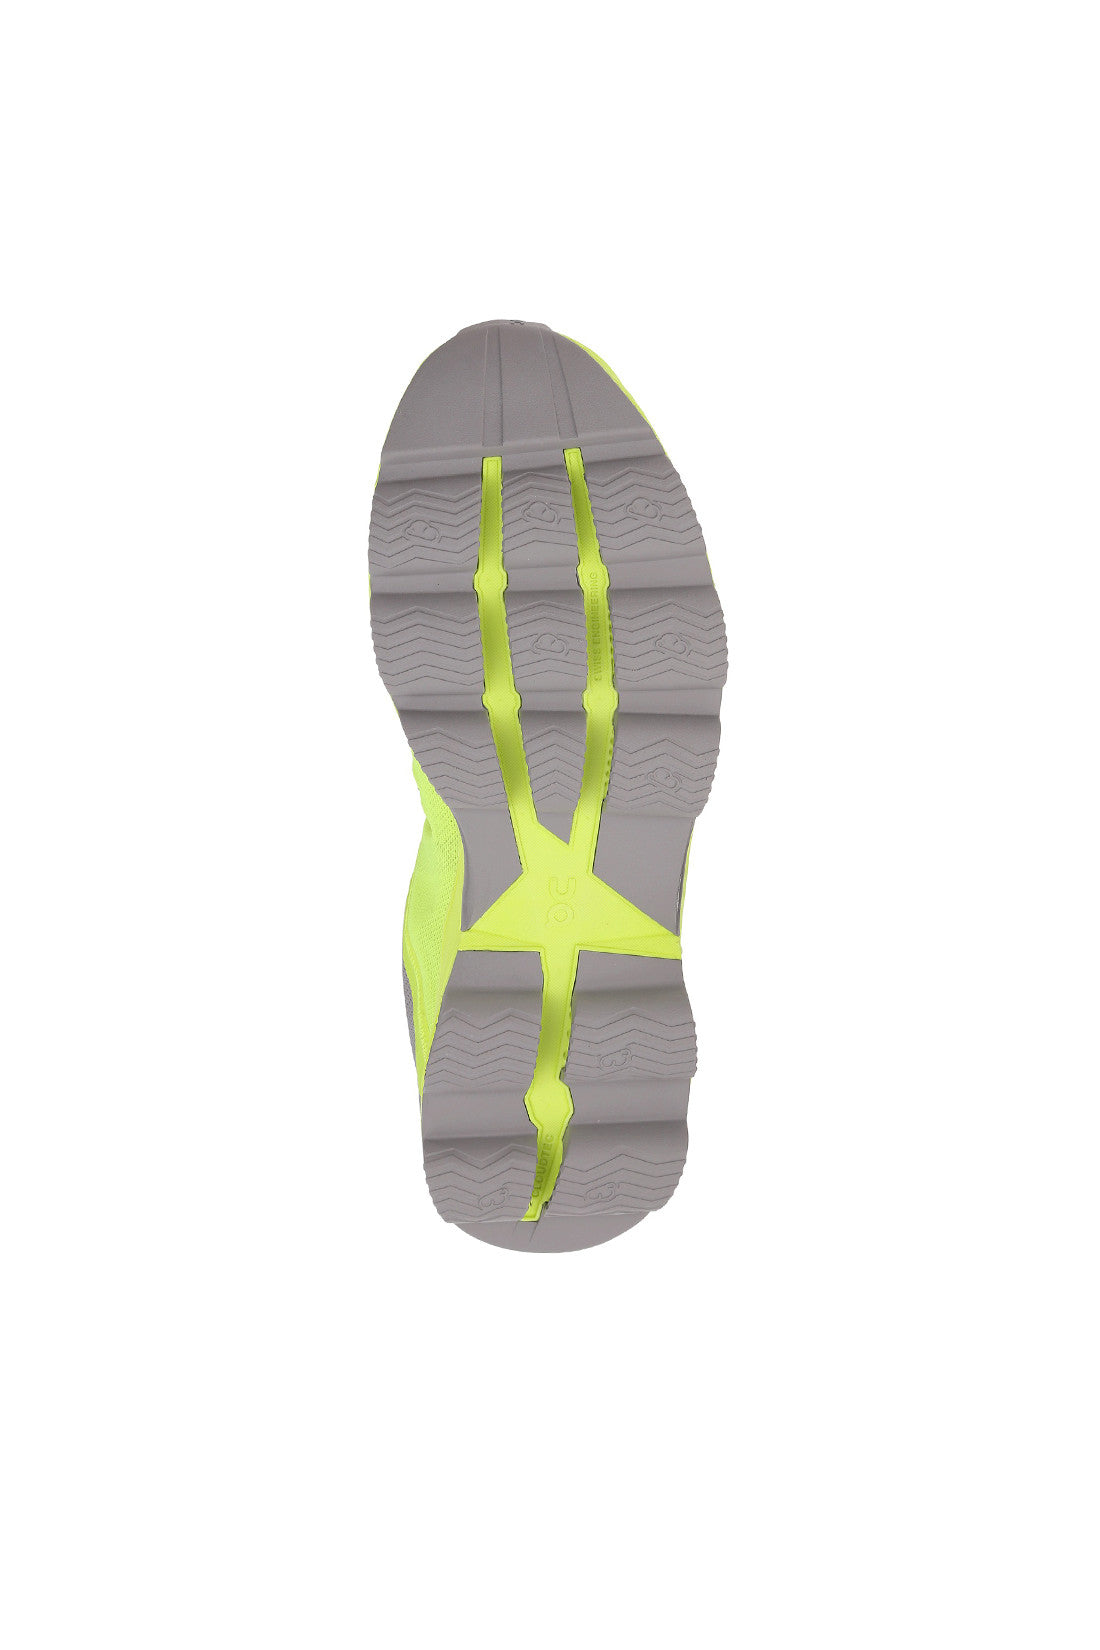 Men's ON Cloudsurfer - Neon Grey